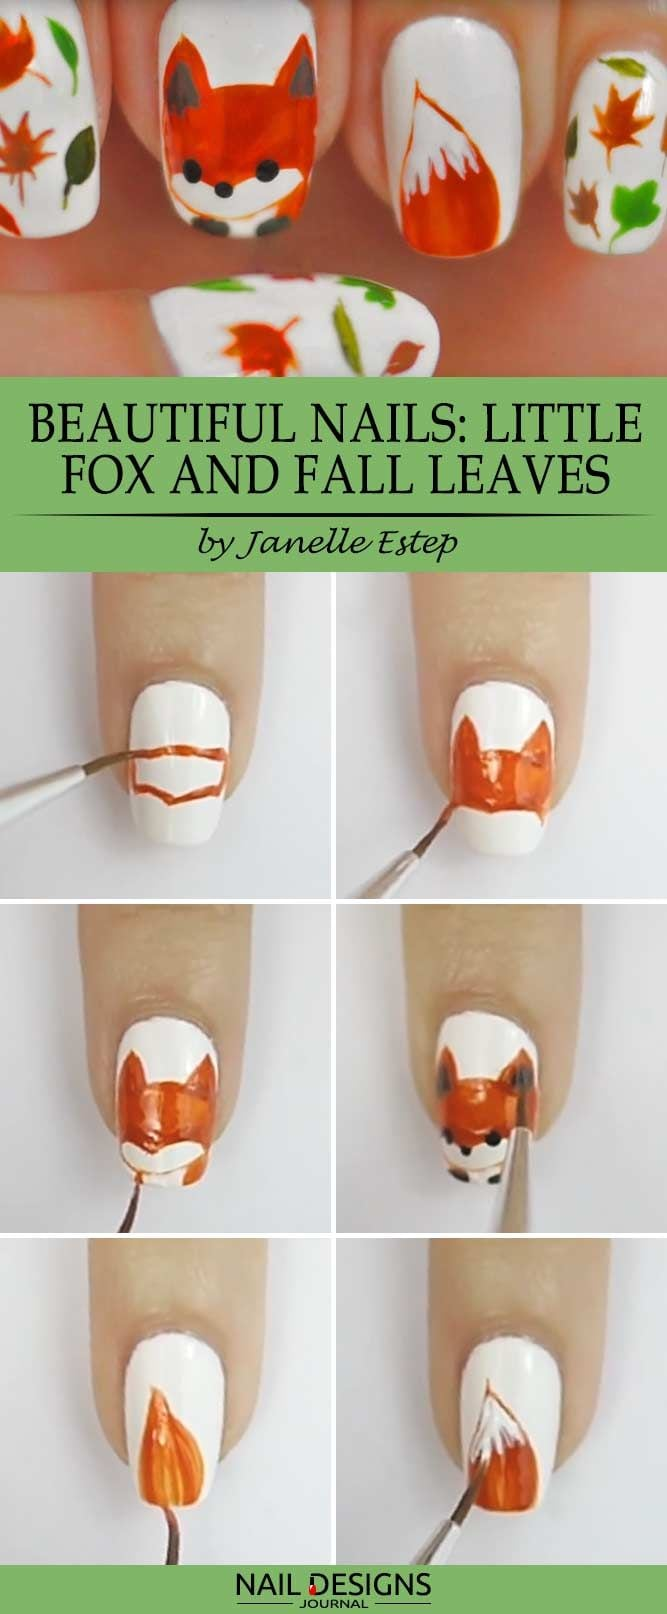 When we think about simple nail designs, we for sure want them to look cute and extraordinary, too. That is why we have come up with a thought that depicting a little fox on your nails may do the trick.…